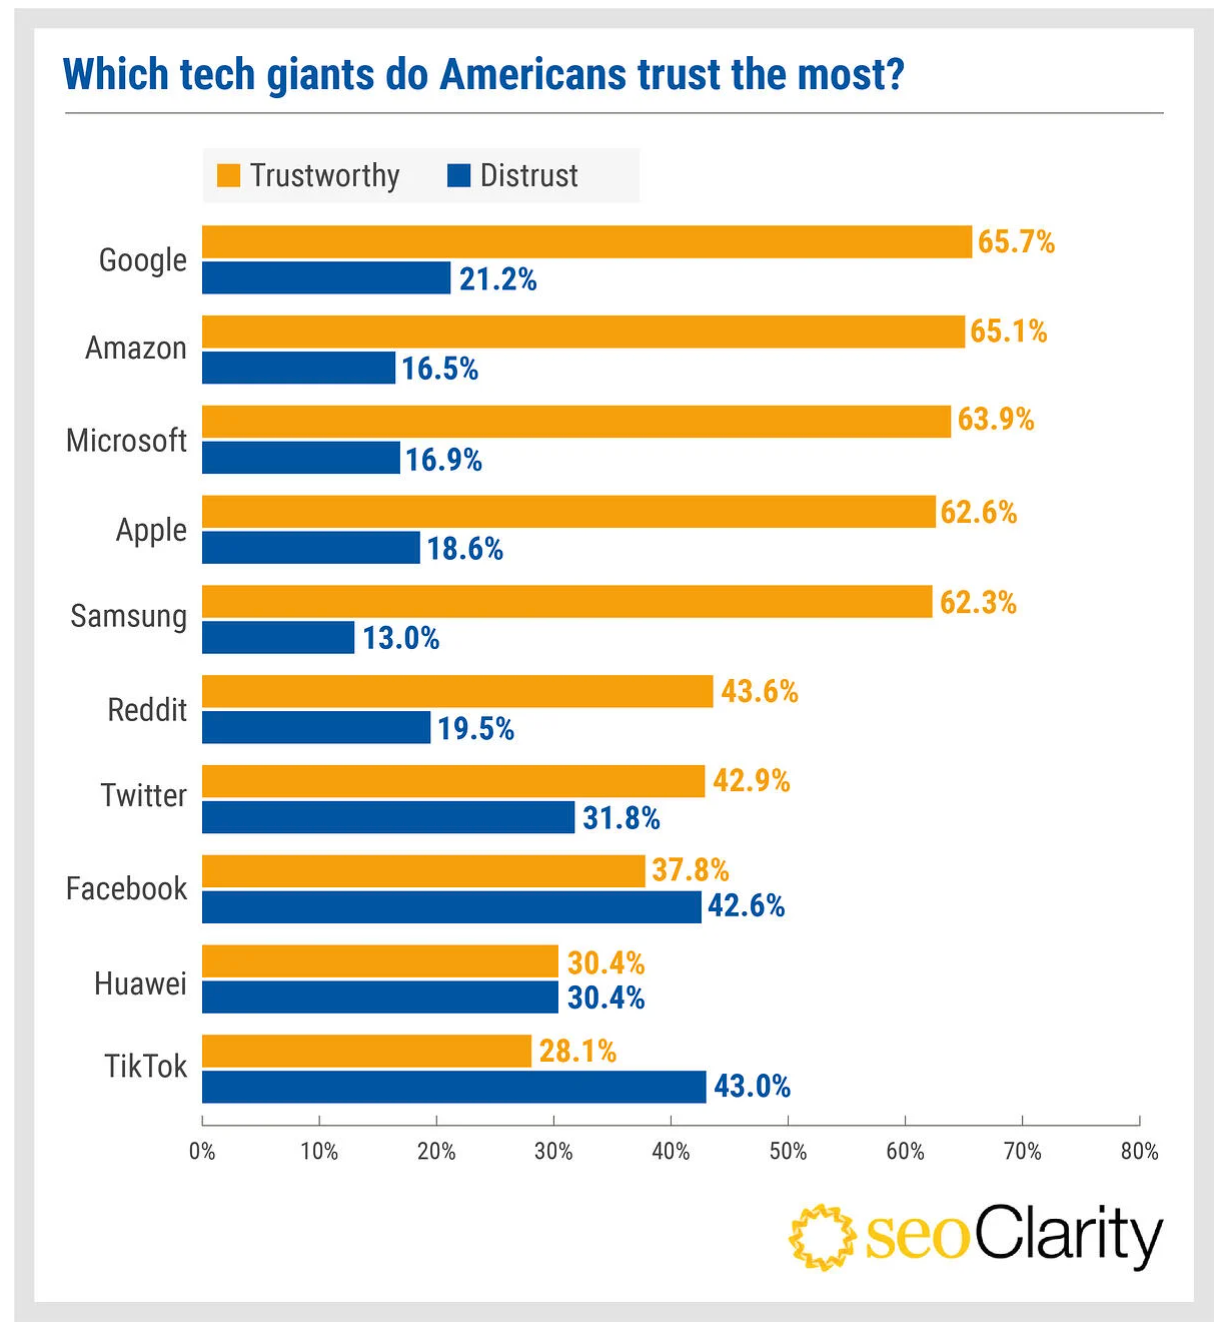 Survey results on which tech giants Americans trust